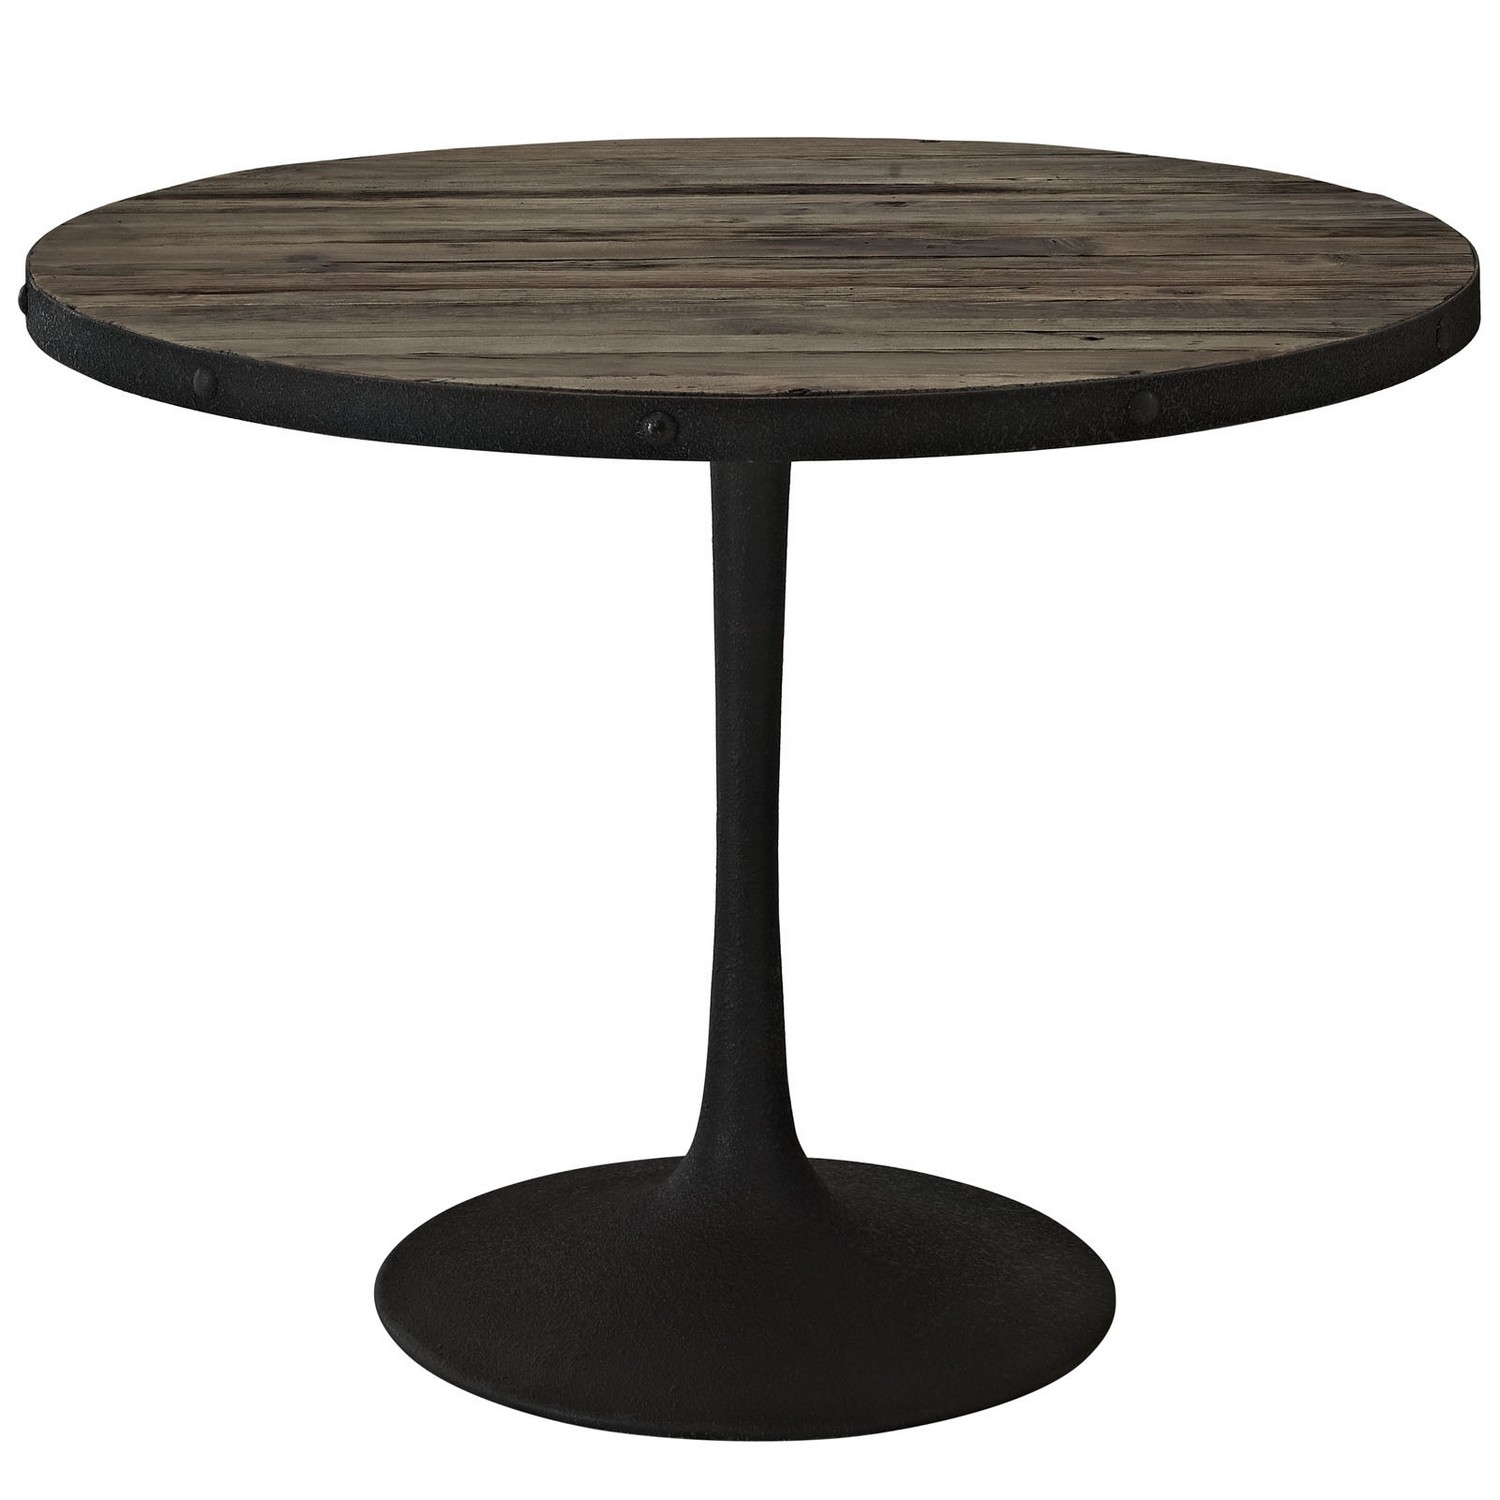 Modway Drive Wood Top Dining Table - Brown